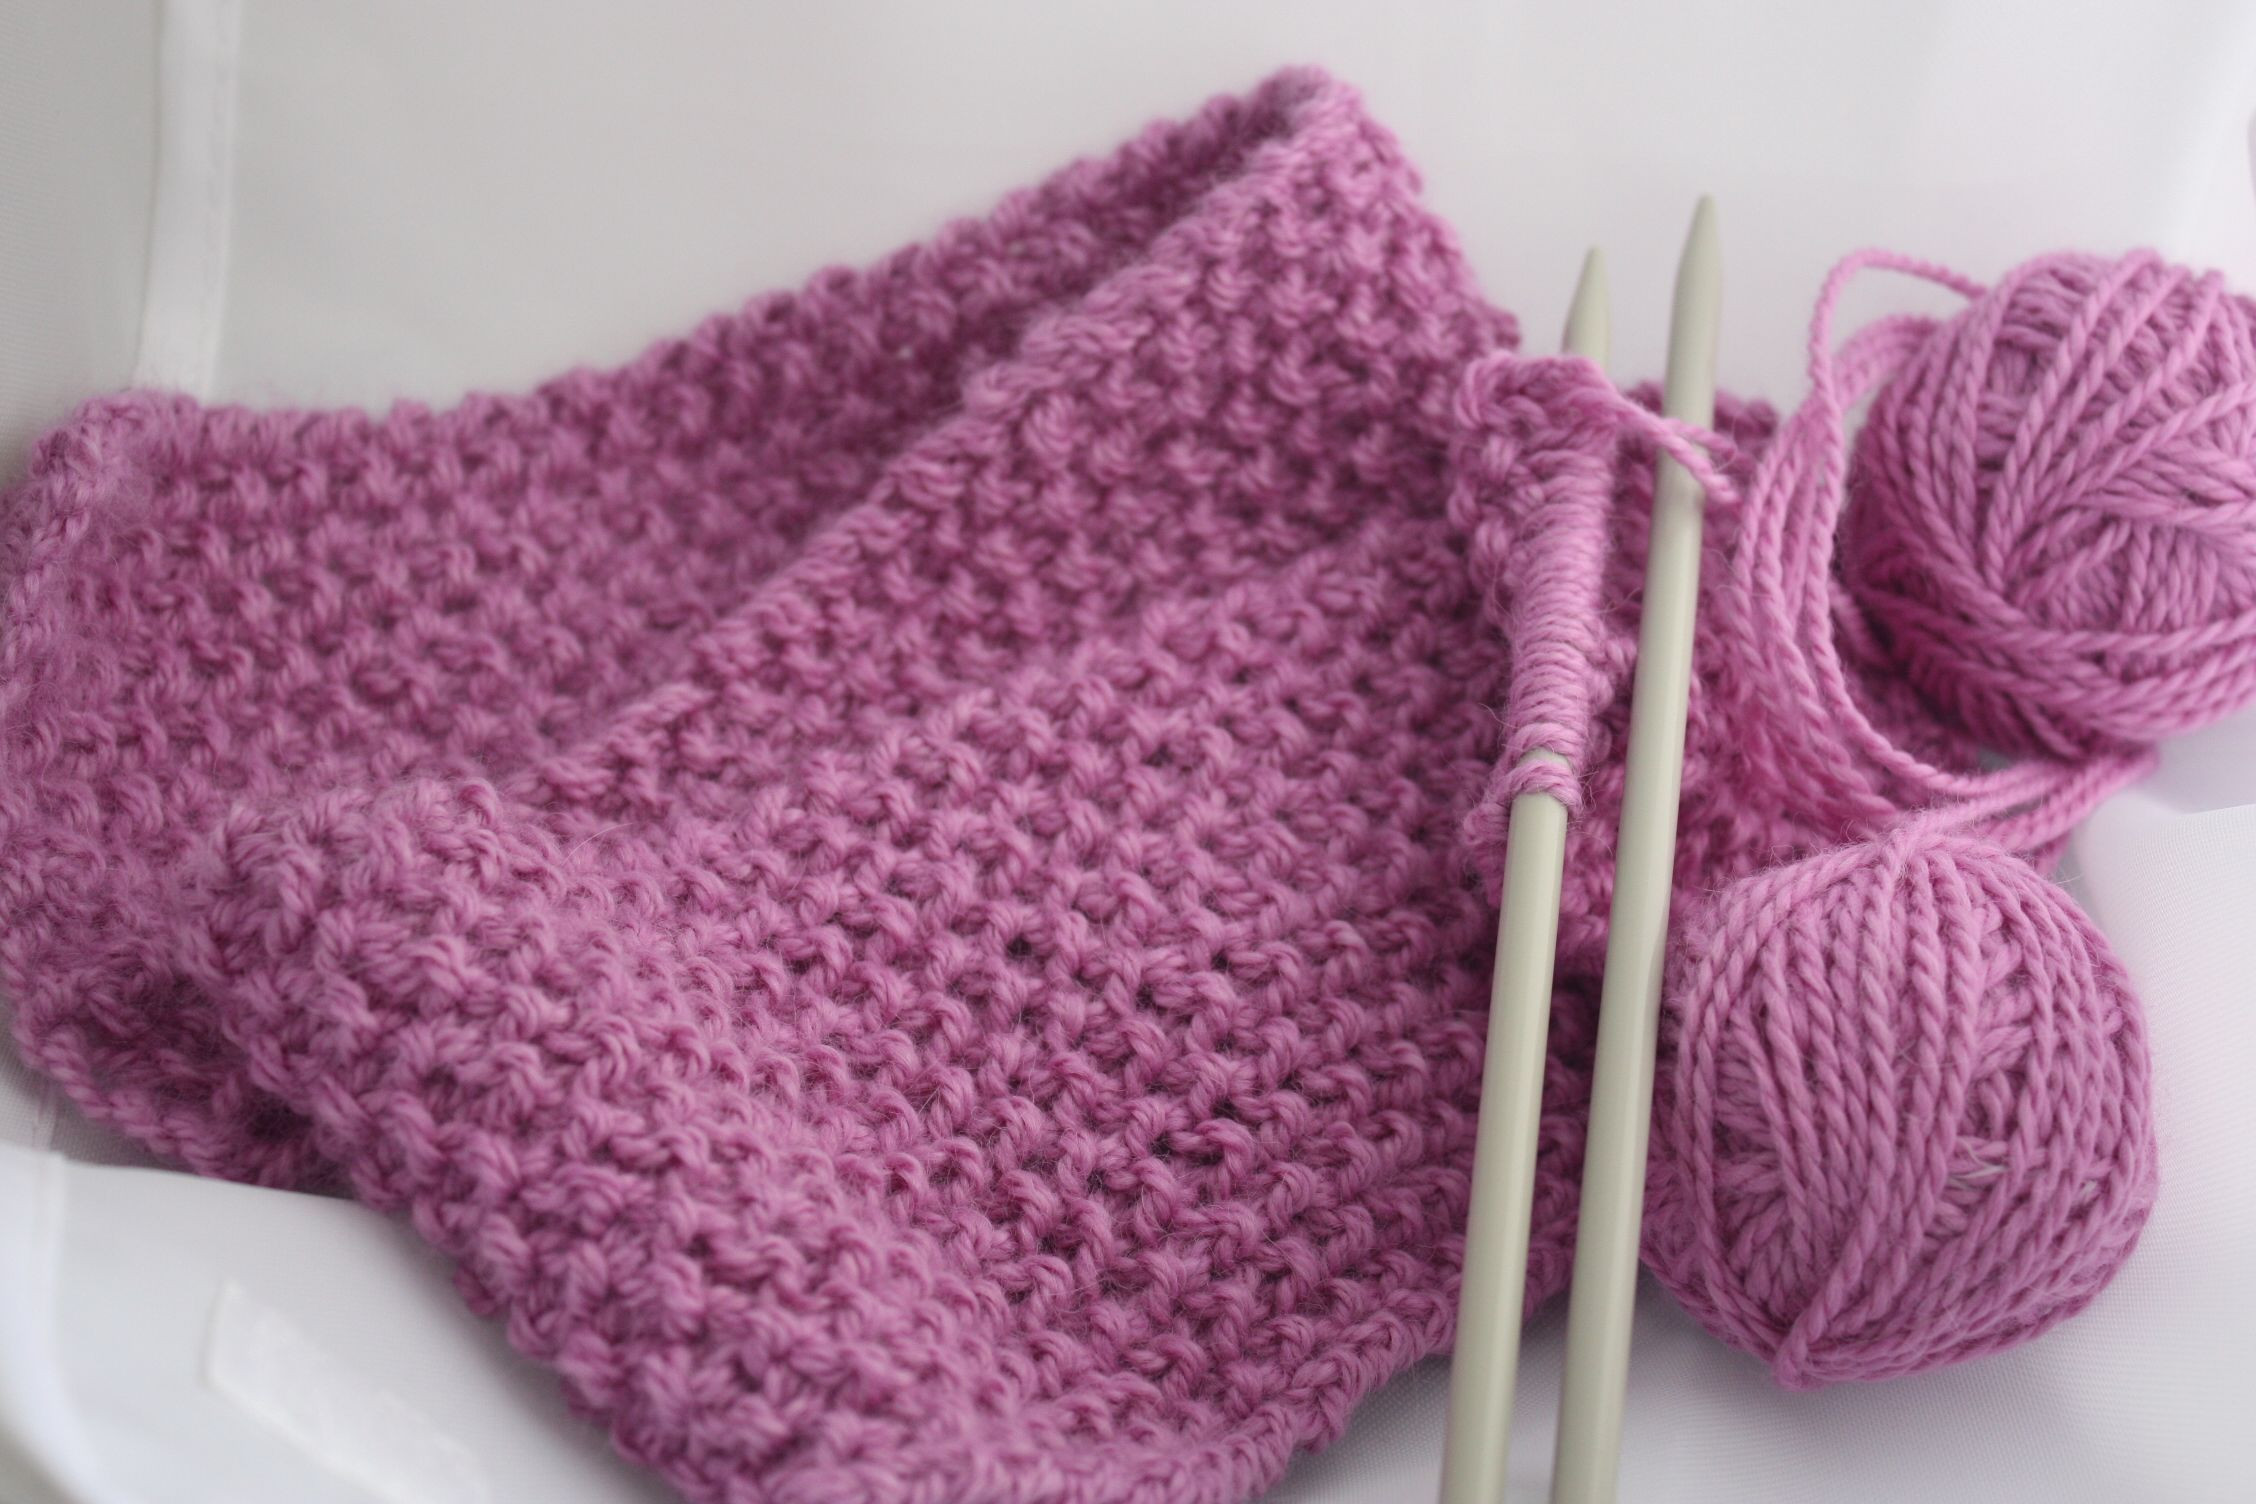 Awesome Knitting Knitting Needles and Yarn Of Amazing 46 Ideas Knitting Needles and Yarn